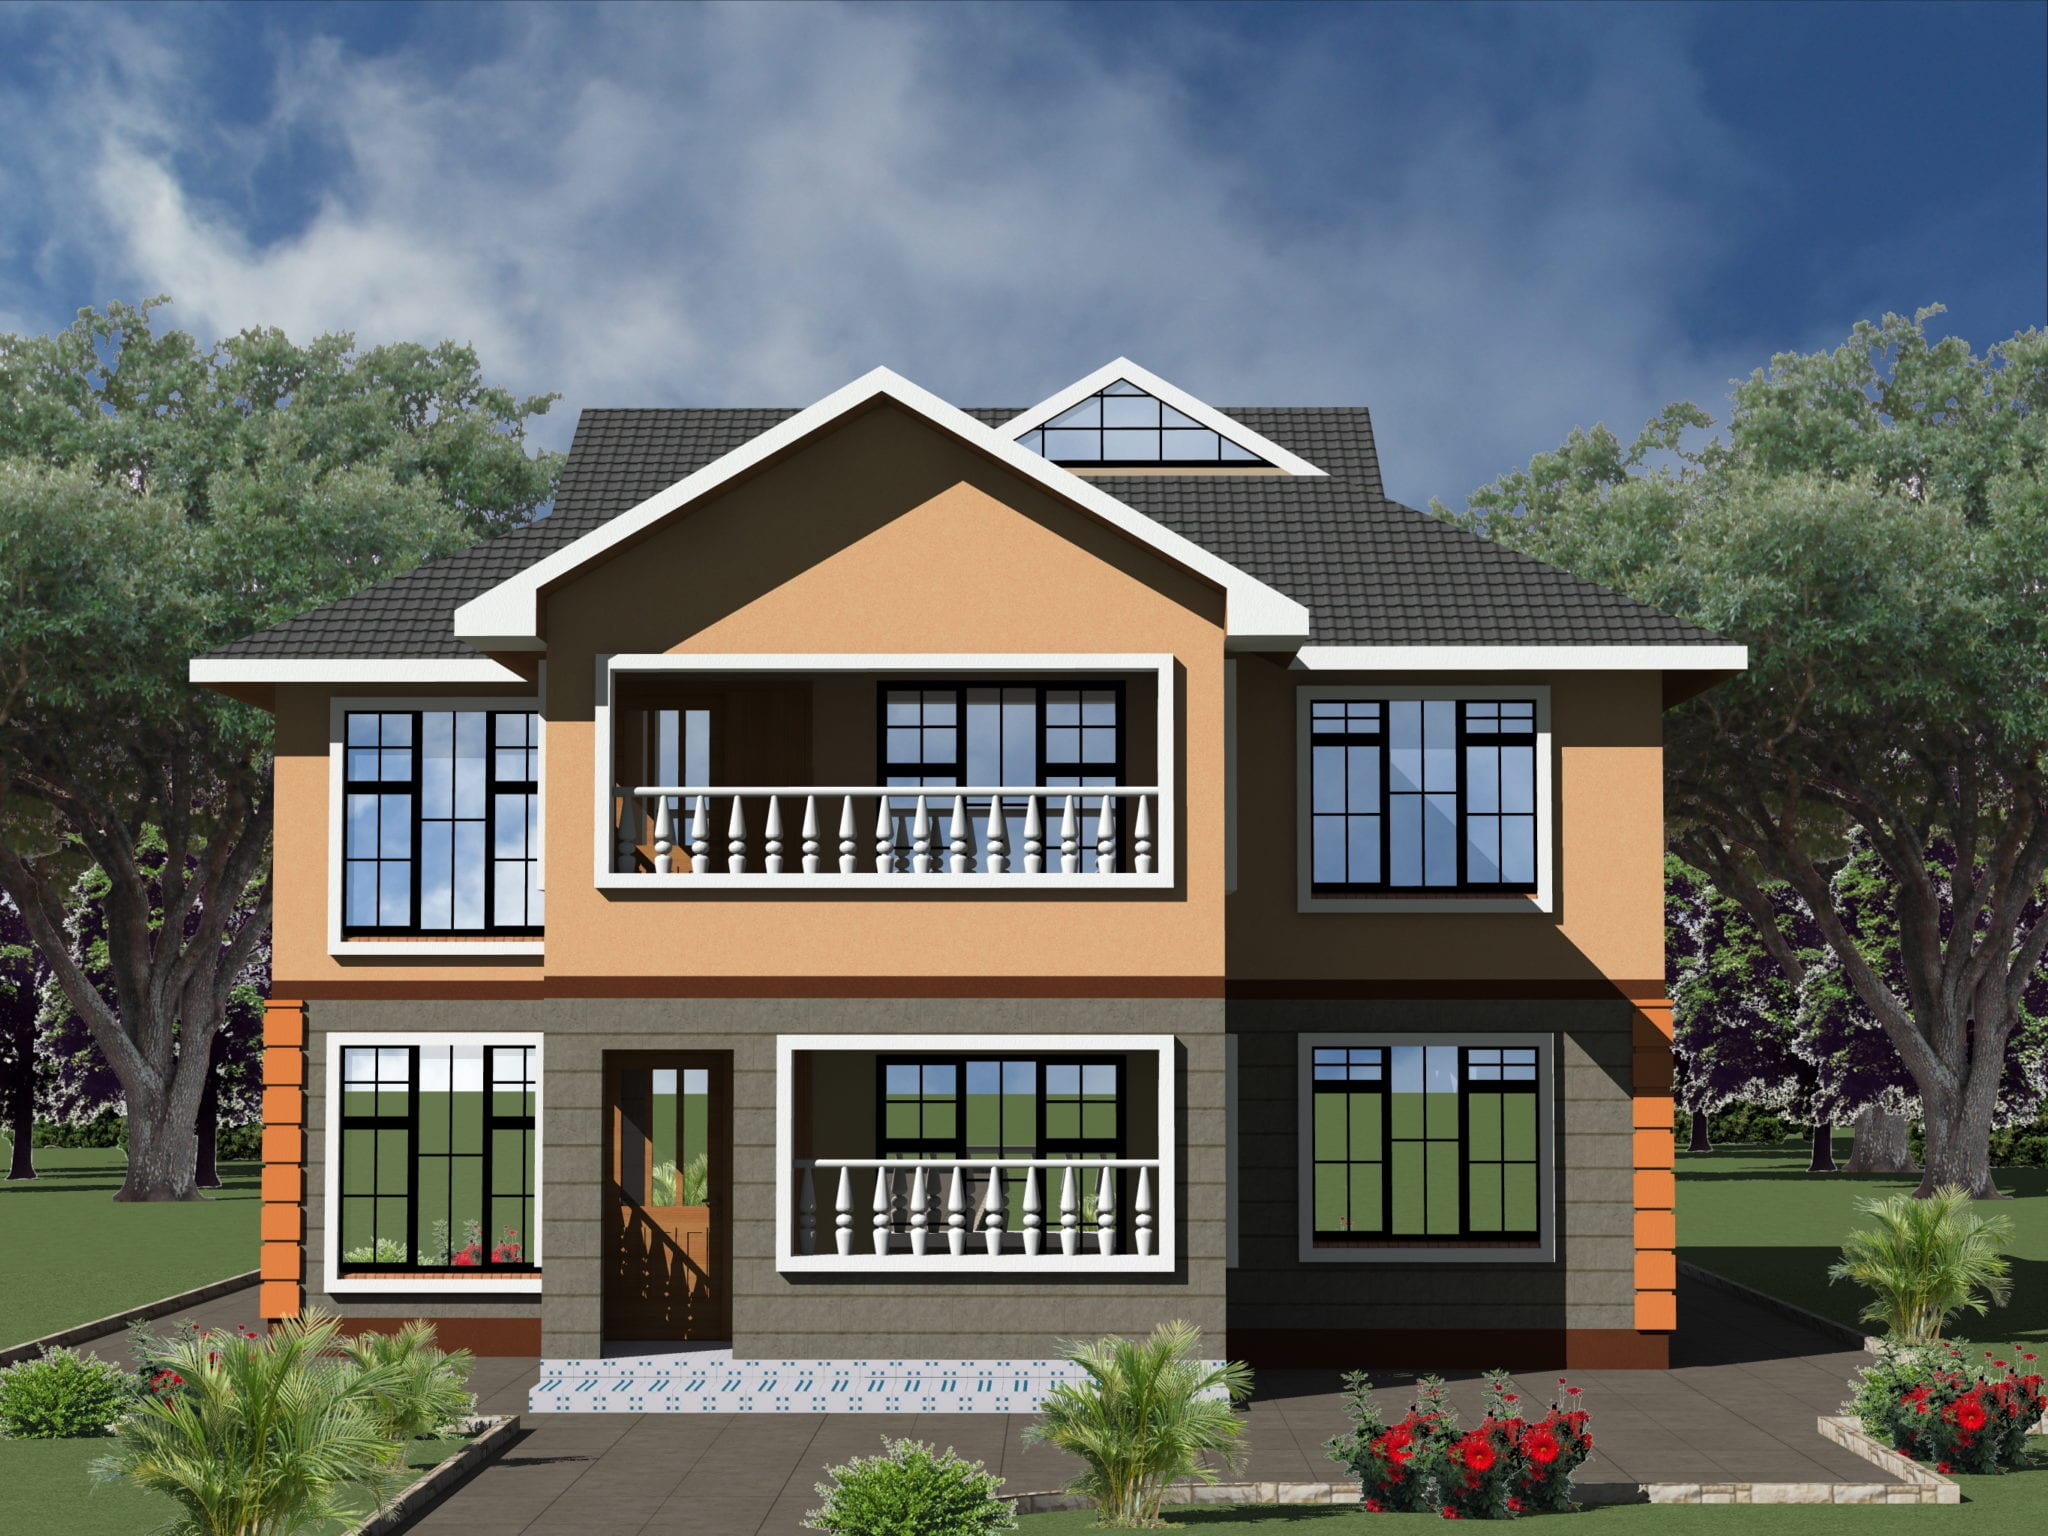 Stylish 5 Bedroom Maisonette House Plans Design | HPD Consult